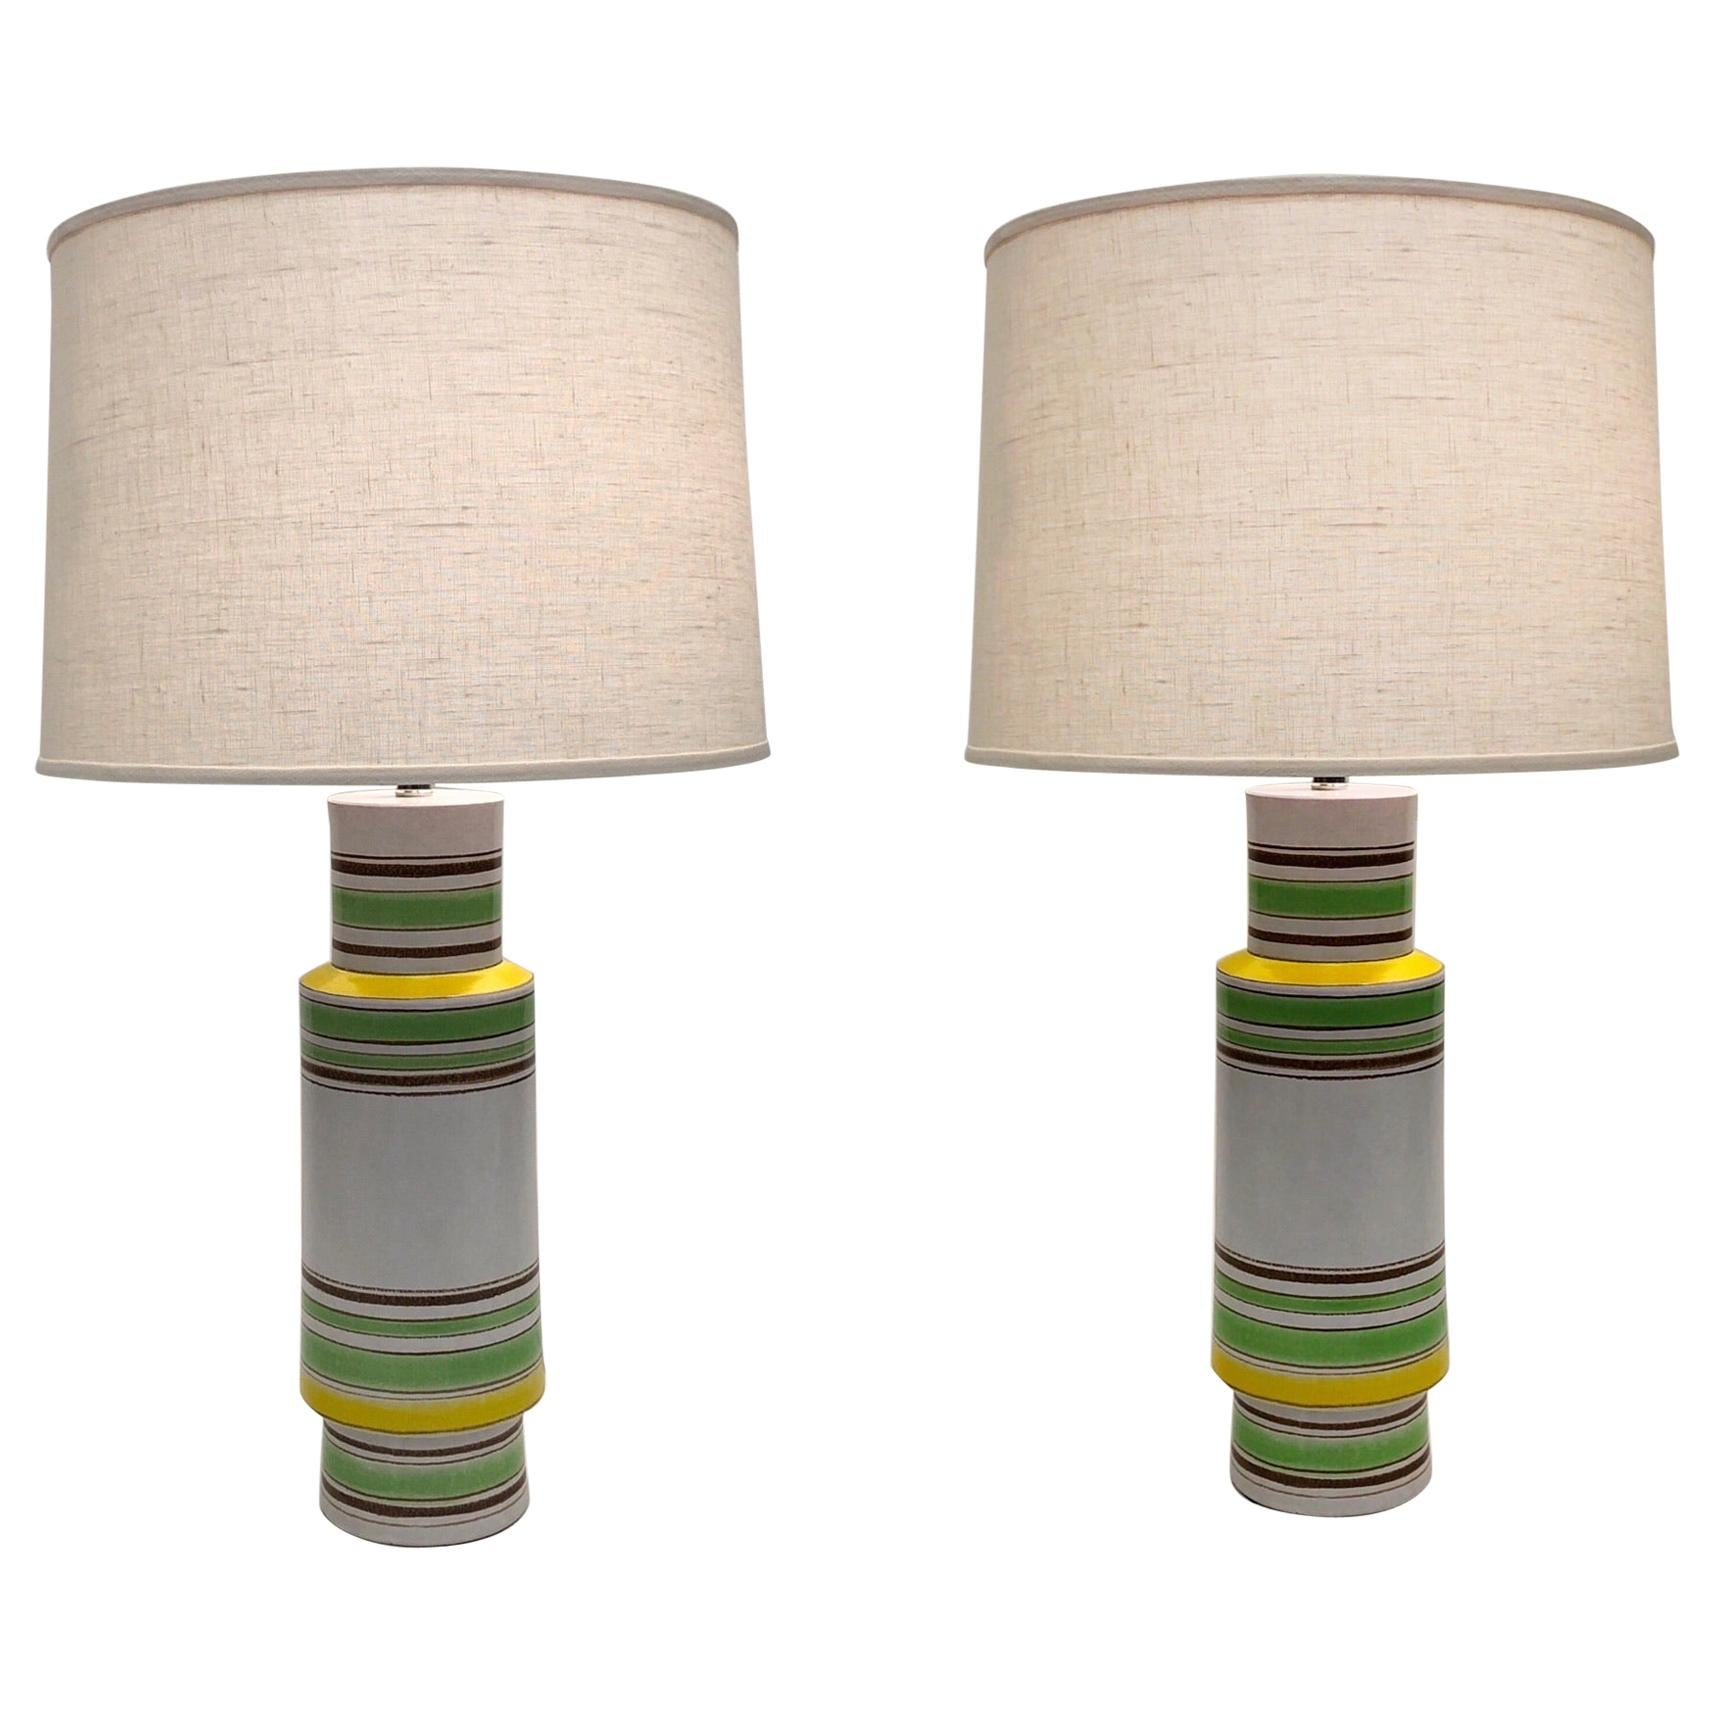 Pair of Italian Ceramic Table Lamps by Bitossi